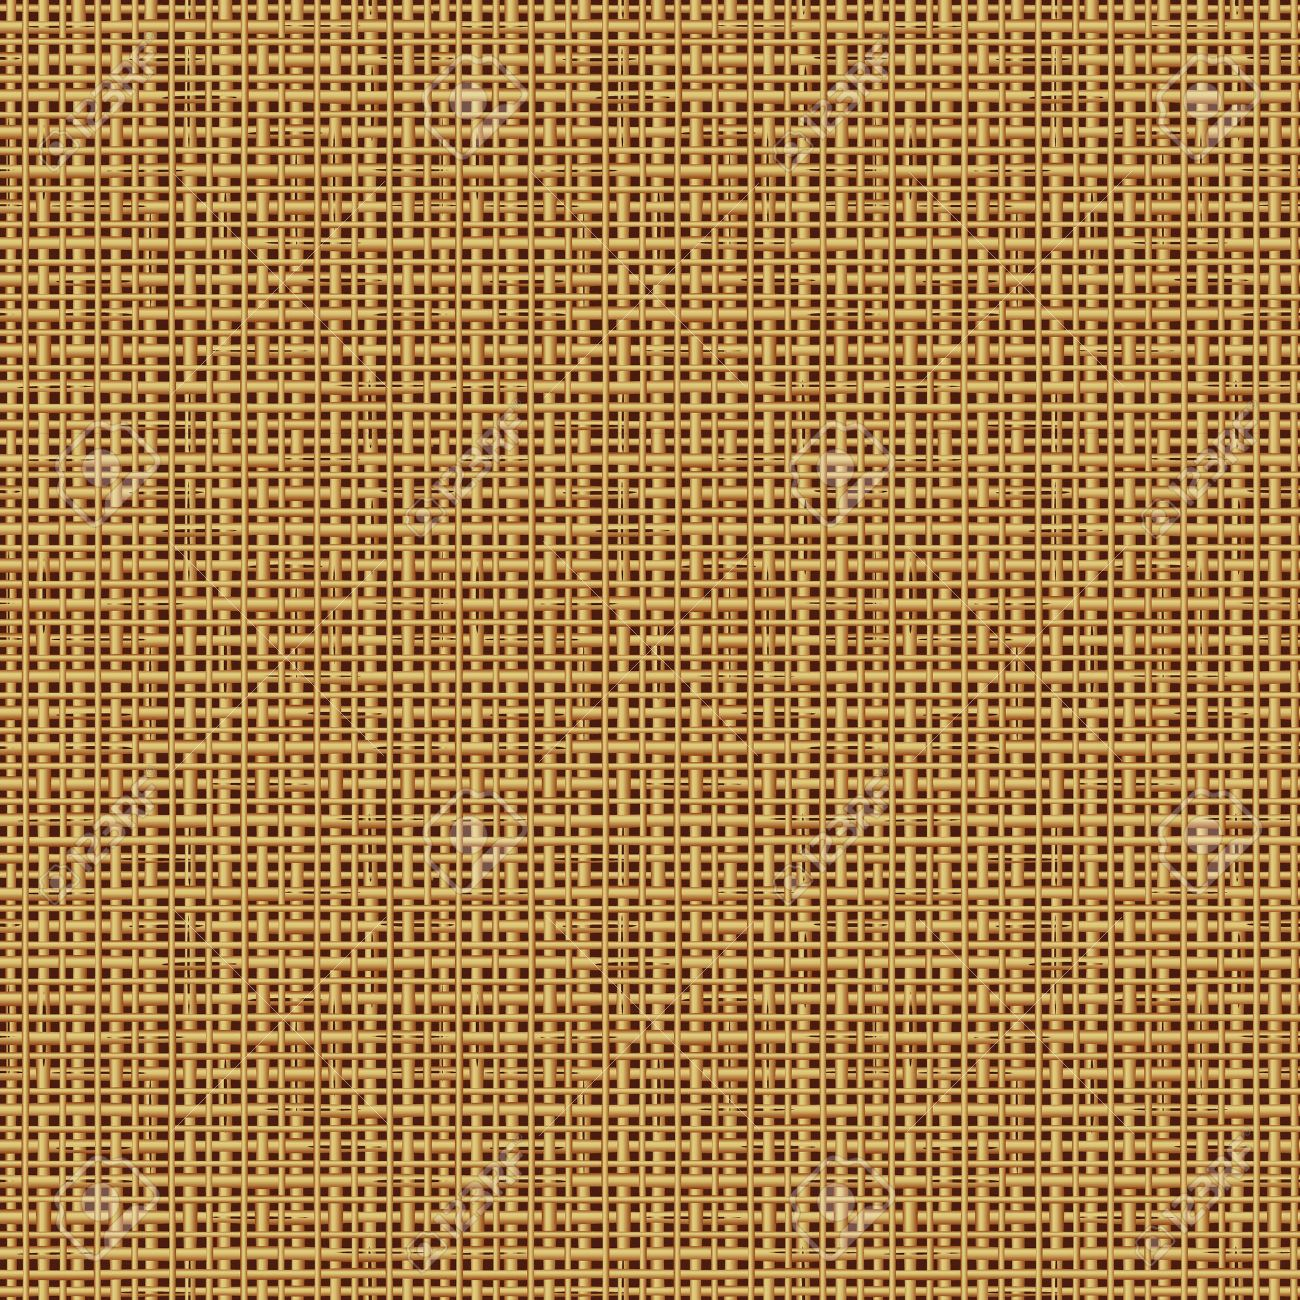 Seamless, or tilable, burlap, canvas, twig, rush, rattan, reed, cane, straw mat, rotang, wicker or bamboo pattern, else background, wallpaper, texture, swatch, print, of natural colors. You see 9 tiles. - 46415569